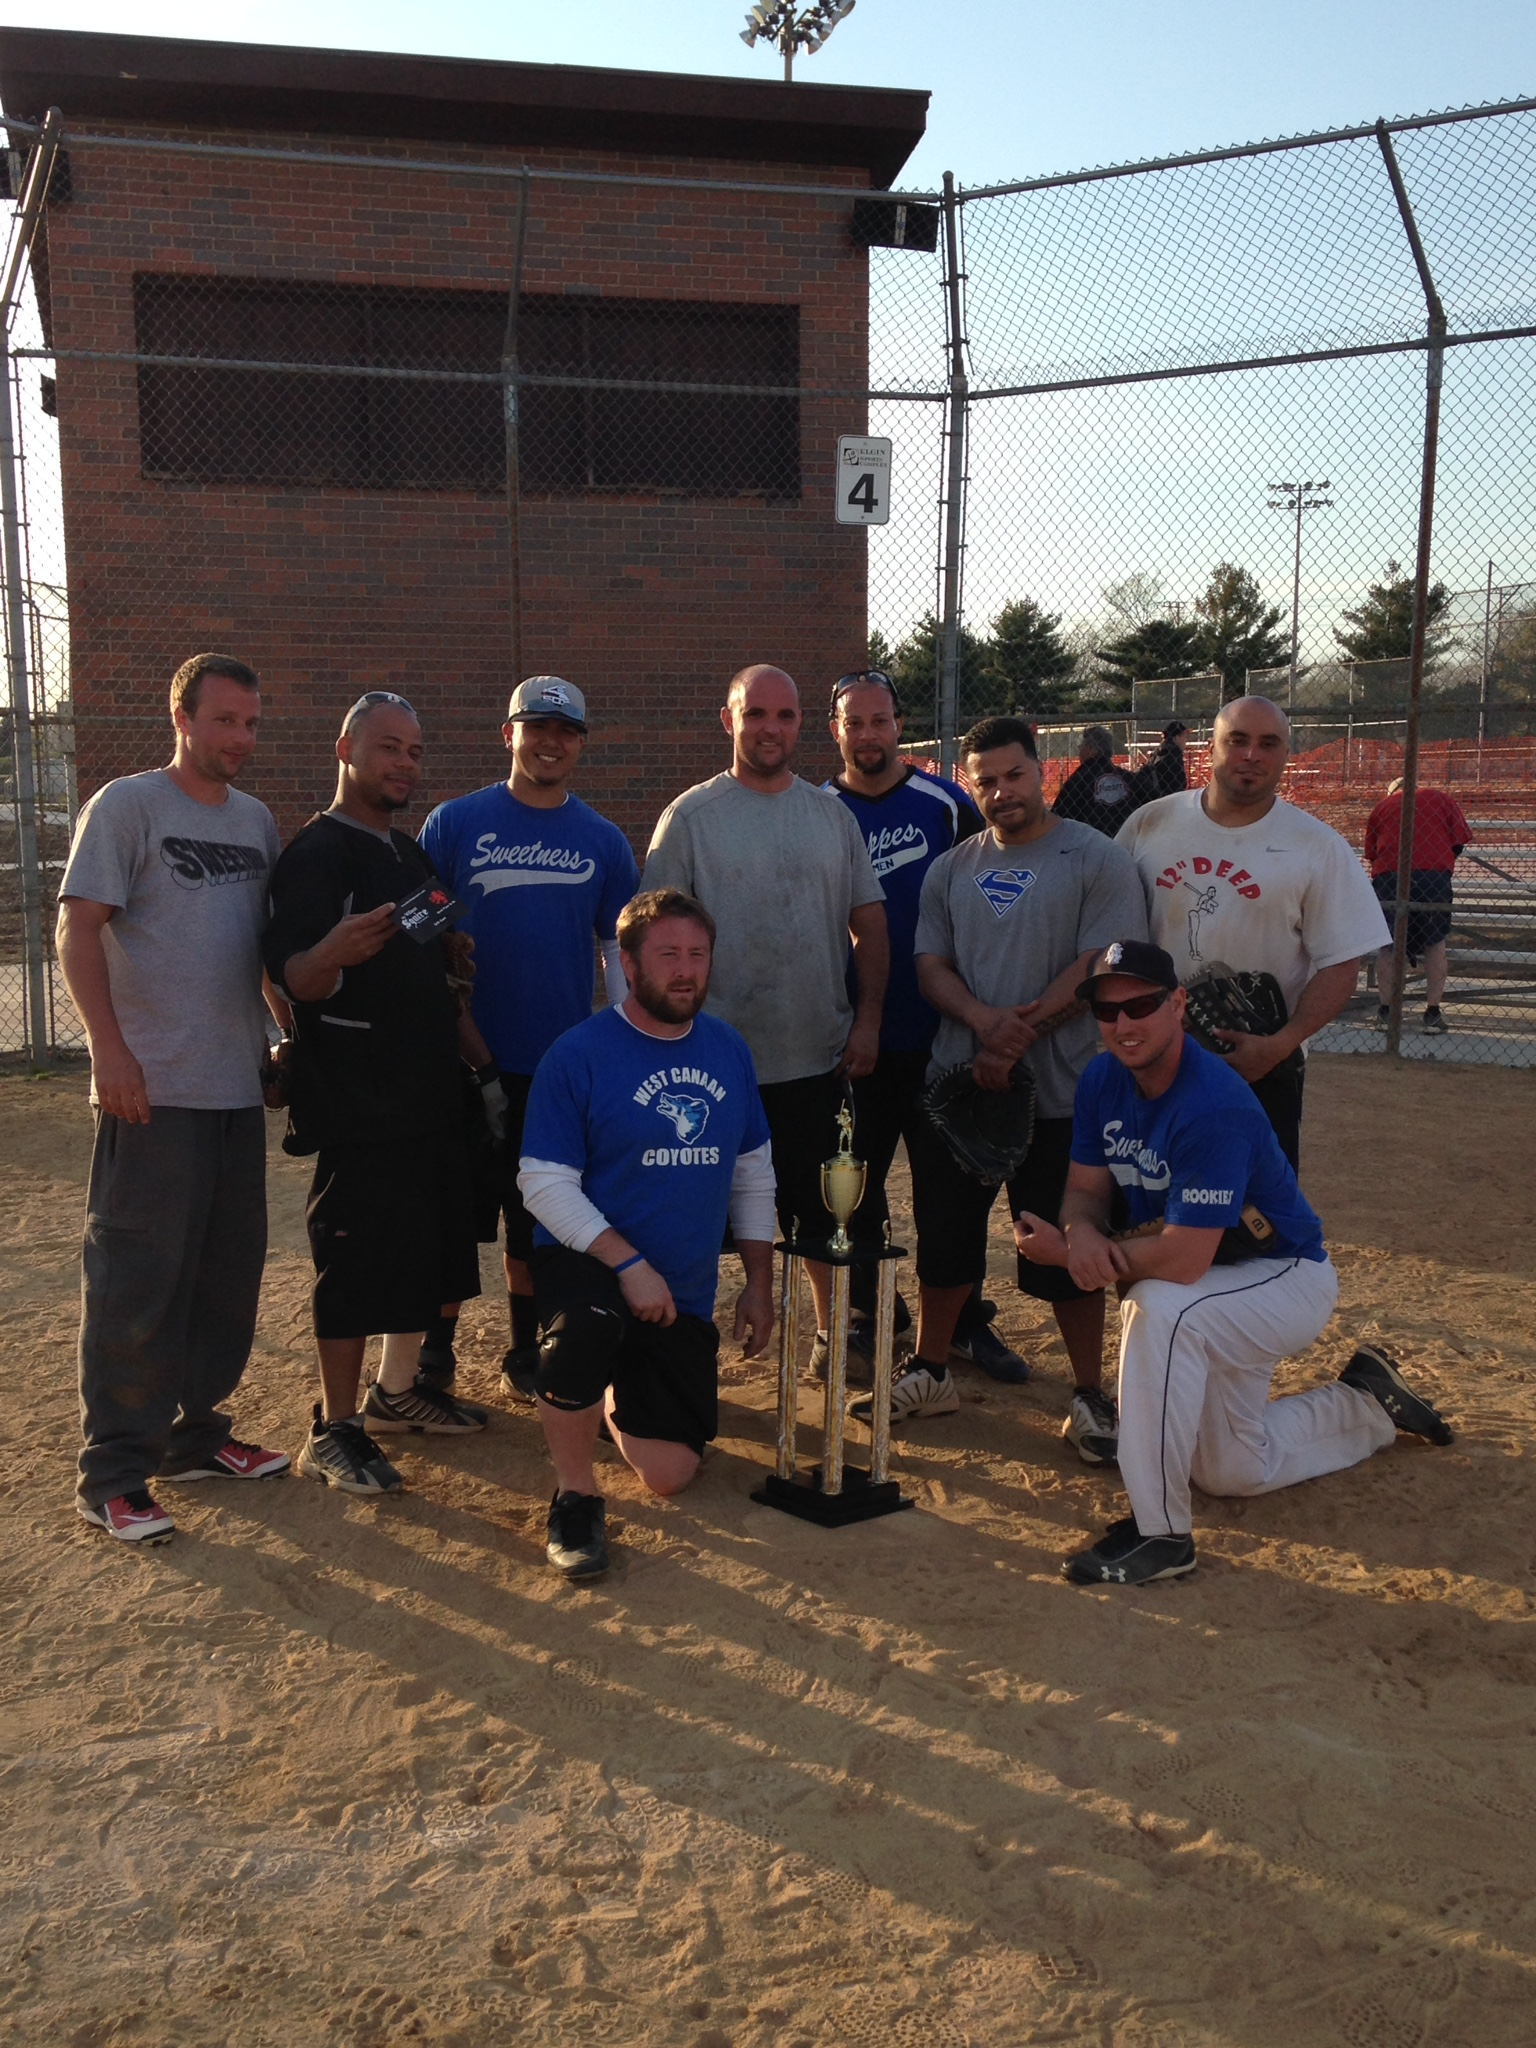 Sweetness - 2015 Early Out Softball Champions